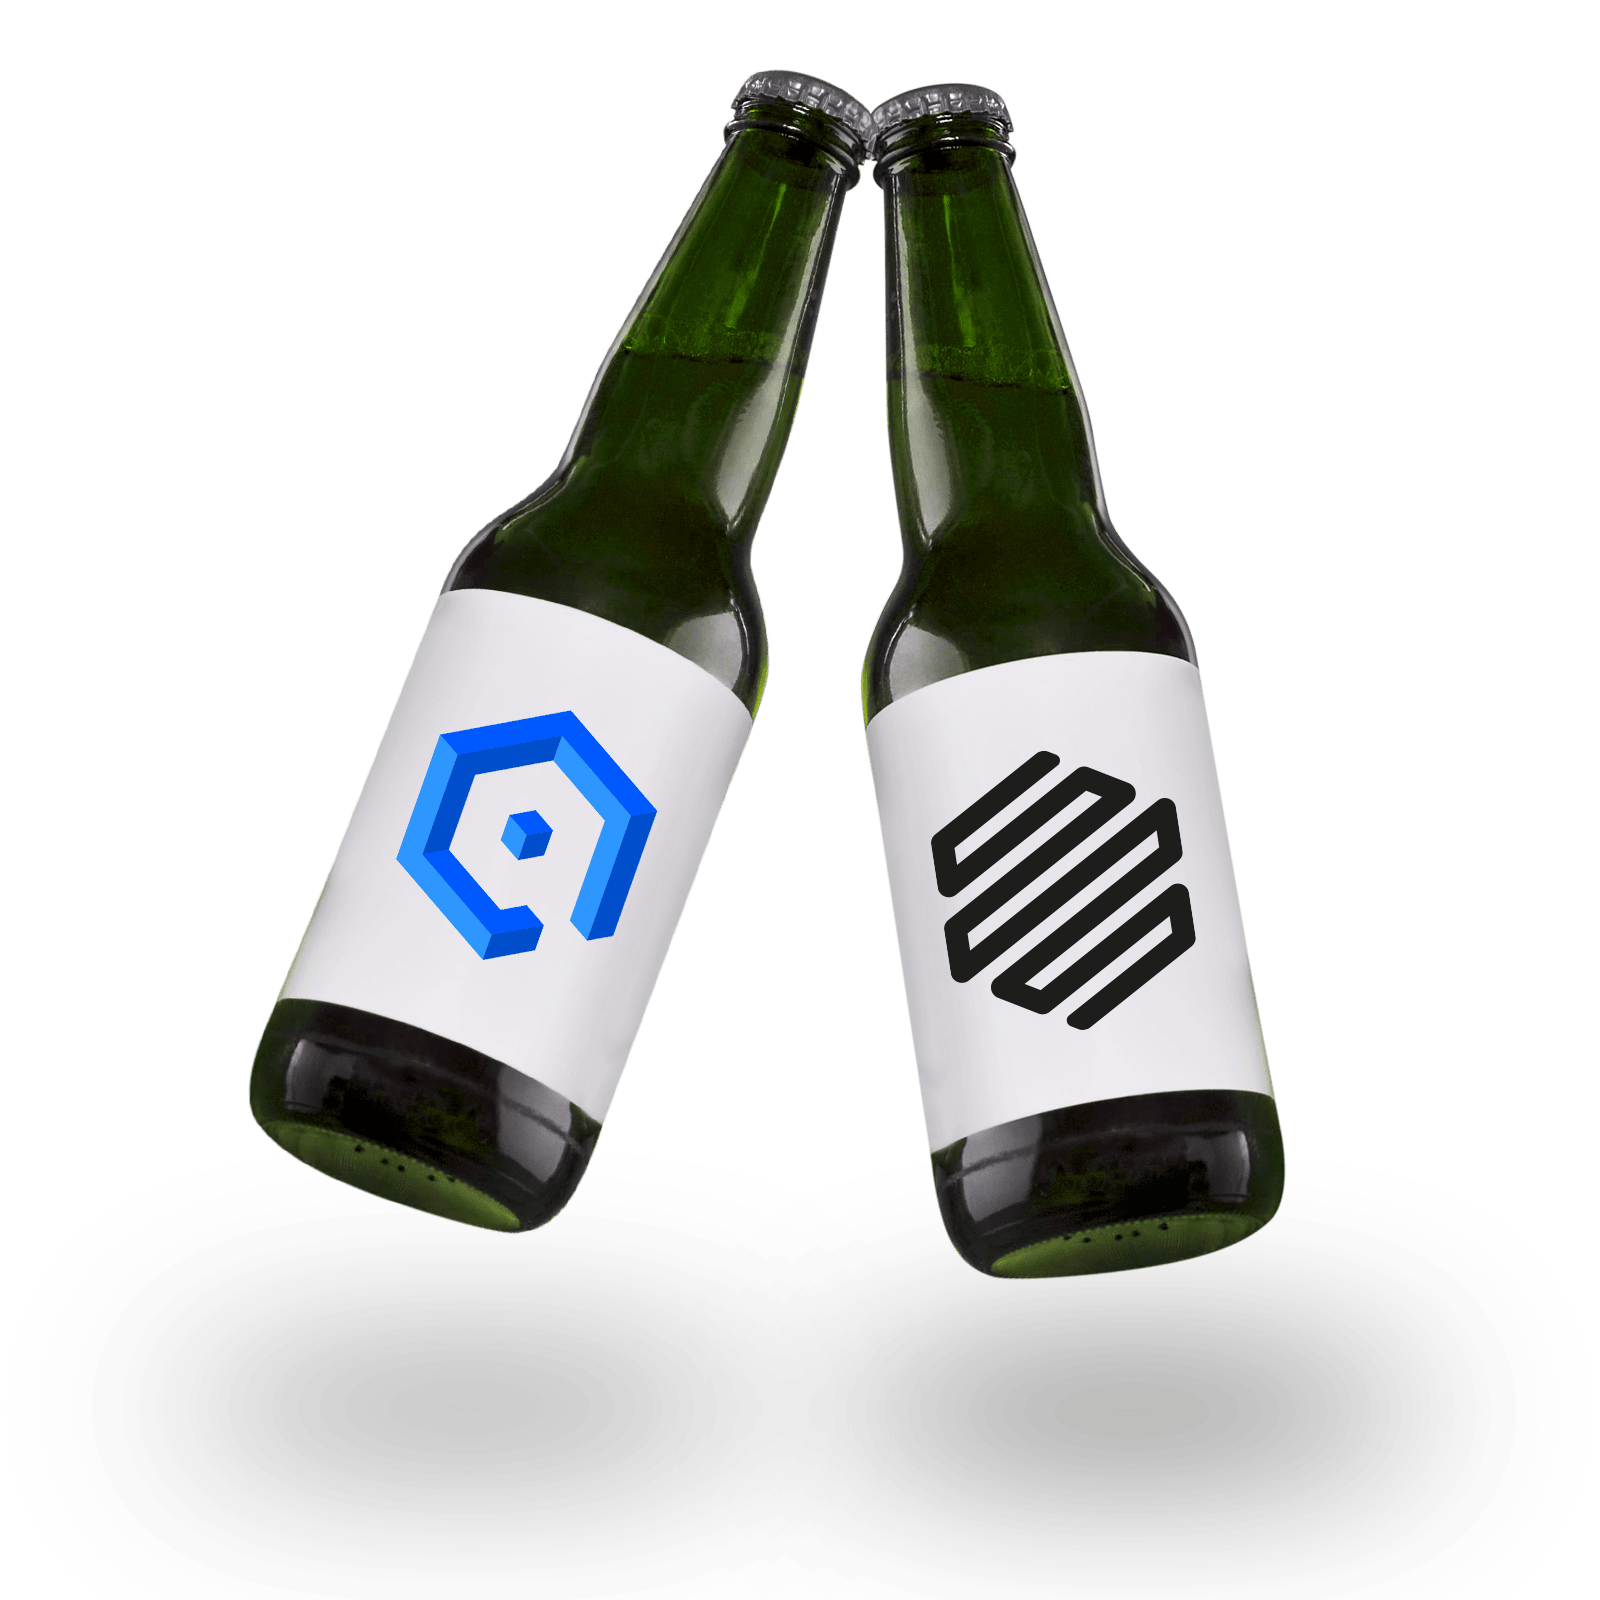 event_markeforged_beer-min